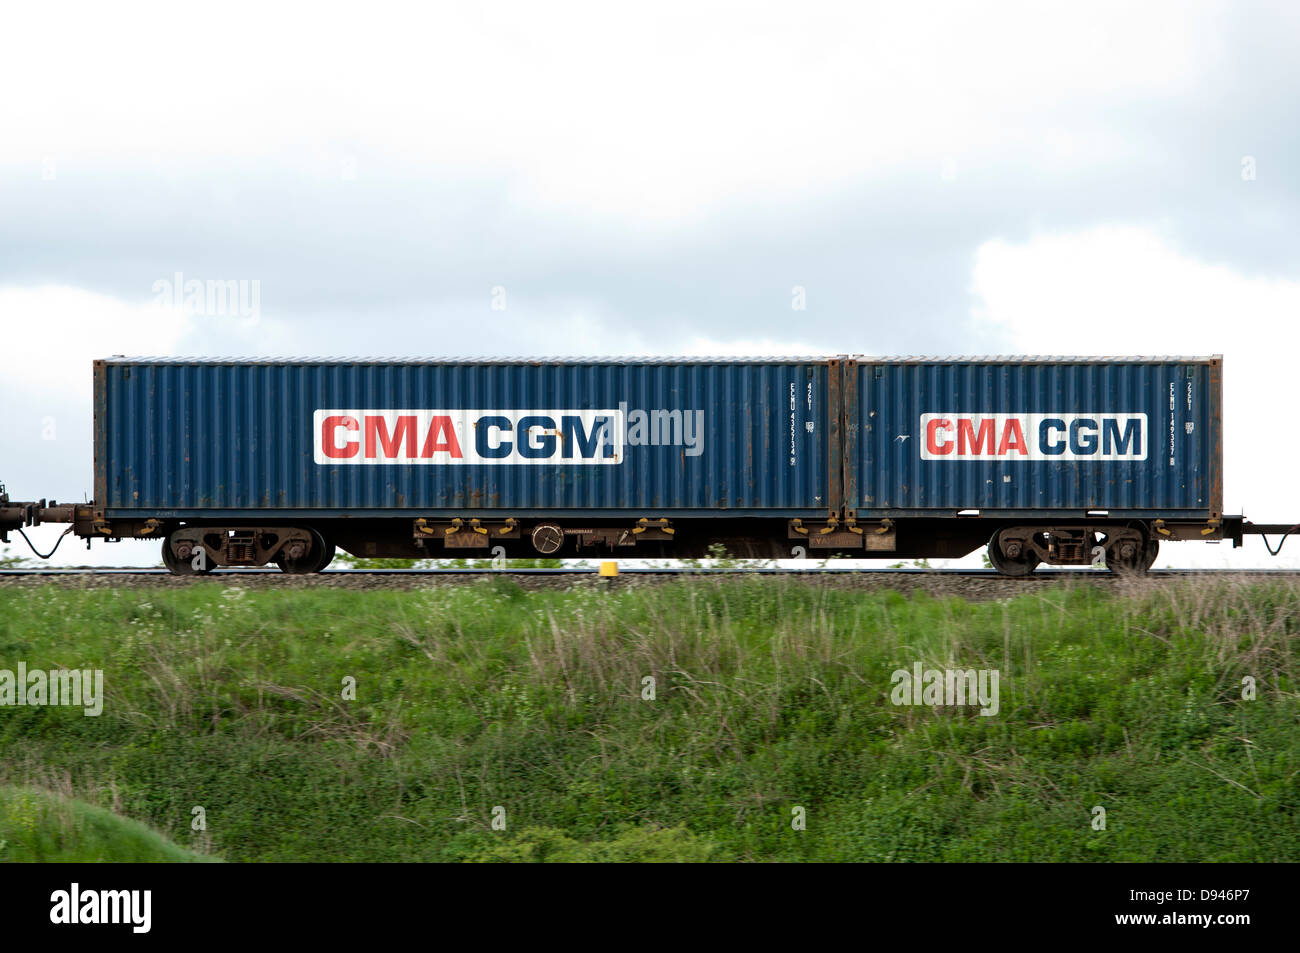 CMA CGM shipping container on train - Stock Image